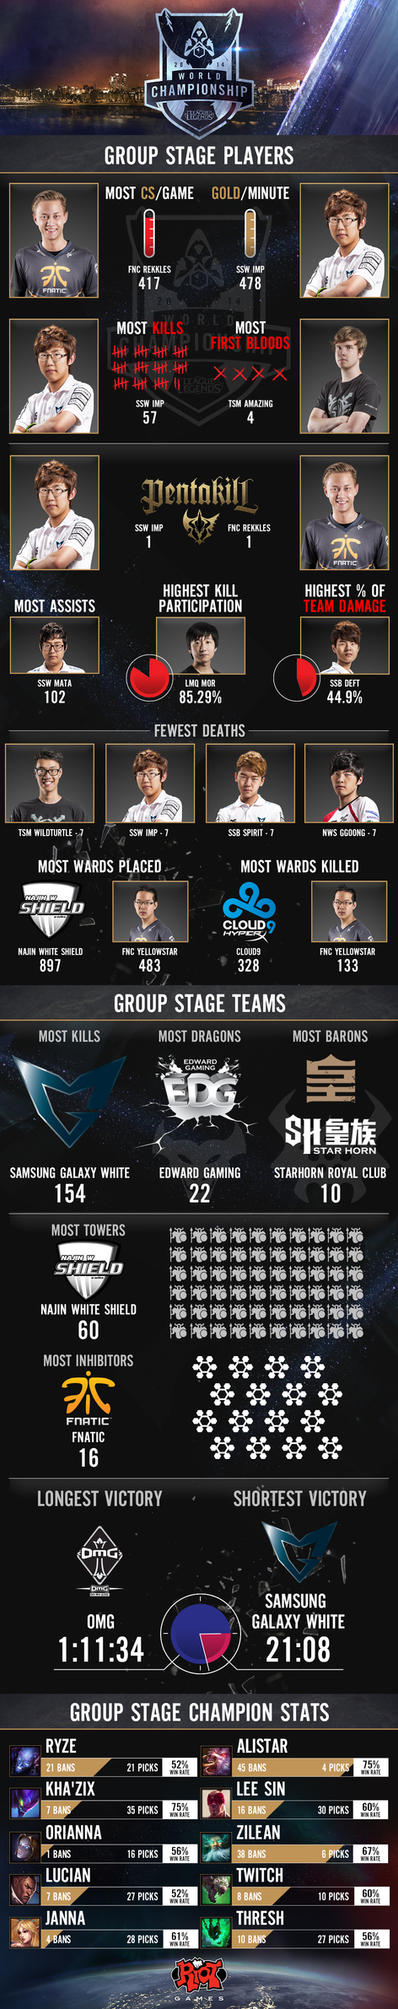 League of Legends Groups Stage 2014 Infographic by femjesse